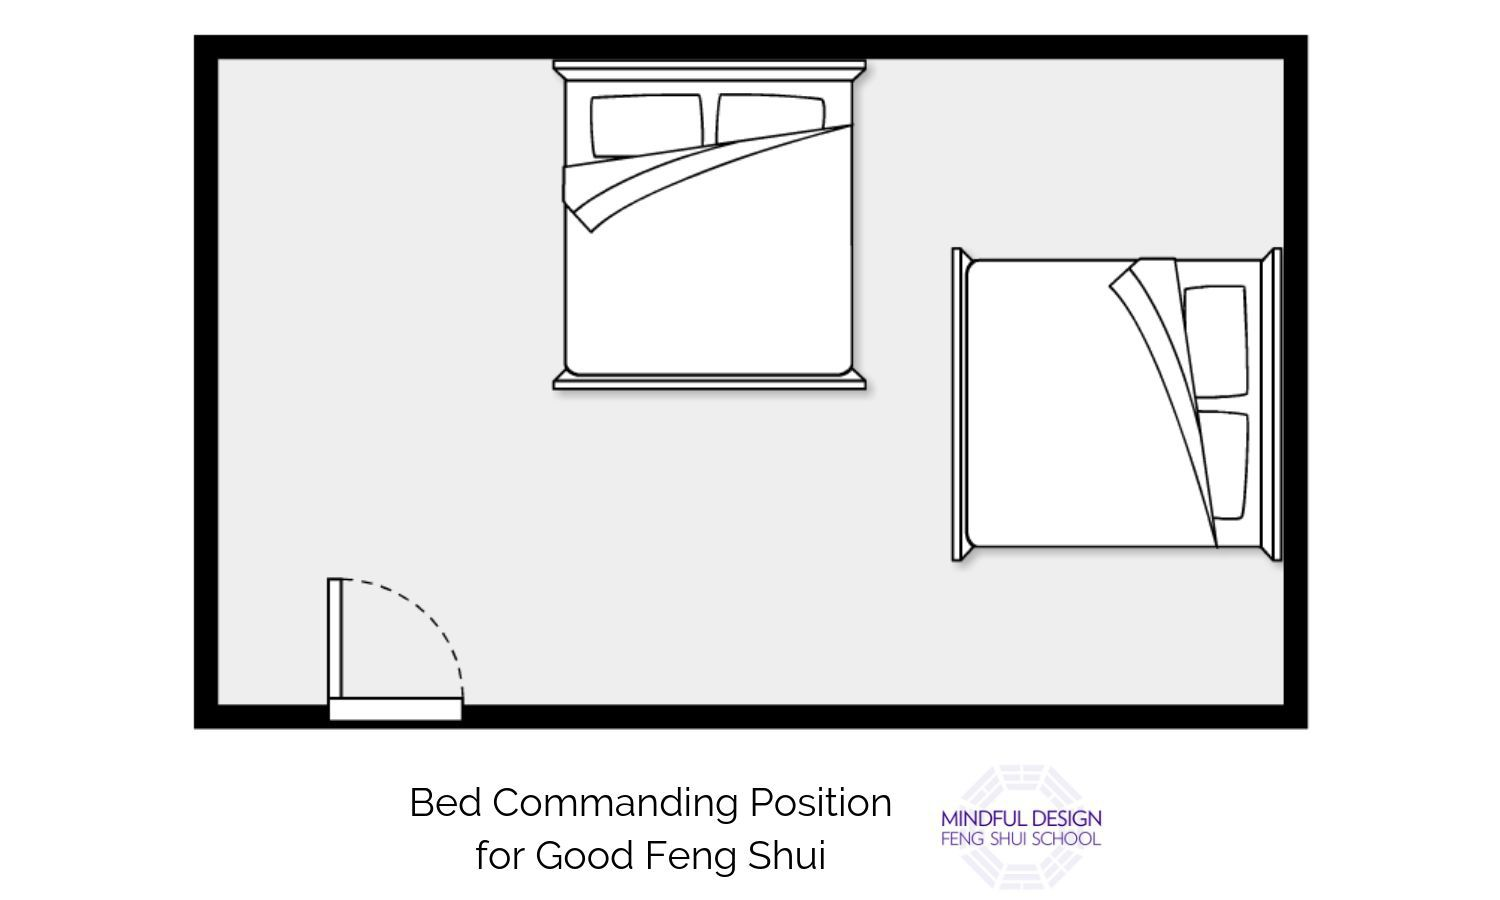 bed commanding position diagram for good feng shui